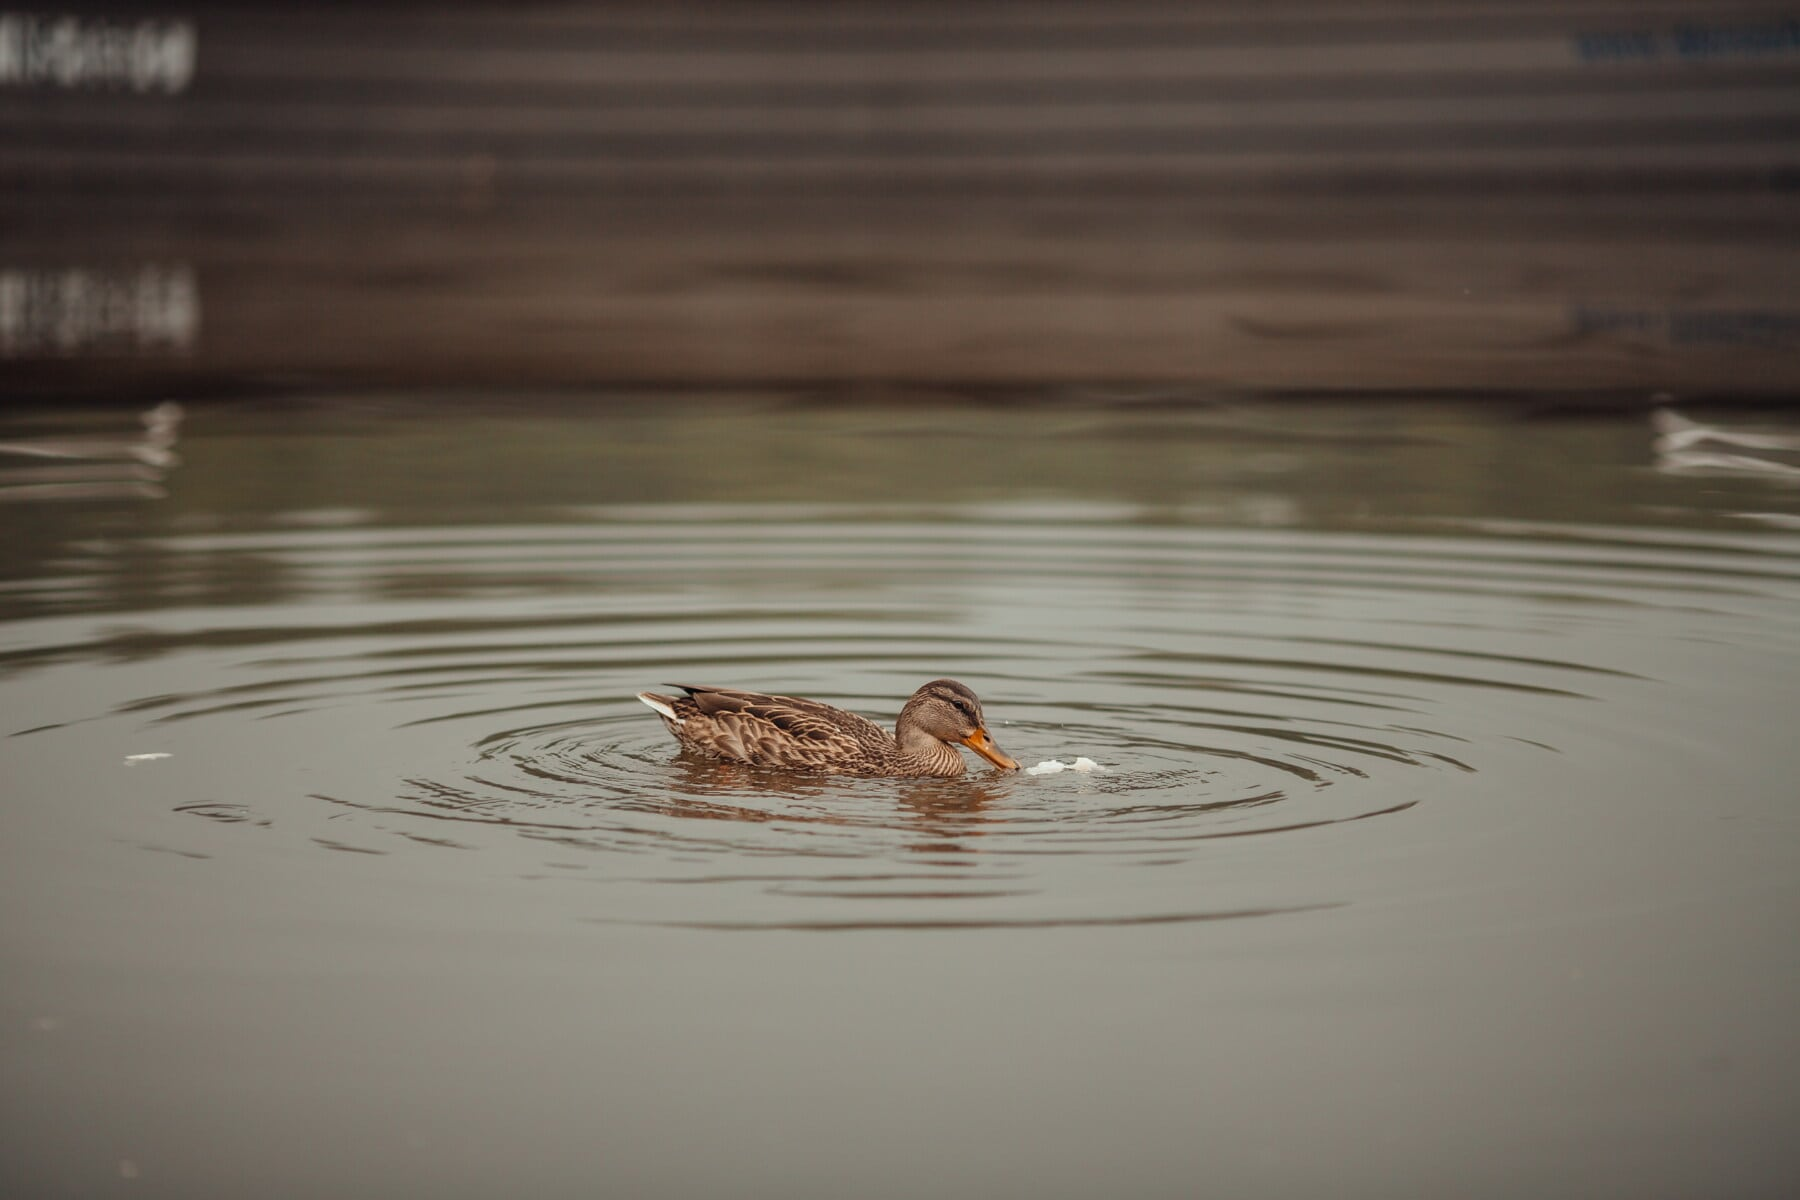 duck, swimming, mallard, wading bird, shorebird, aquatic bird, water, waterfowl, lake, bird